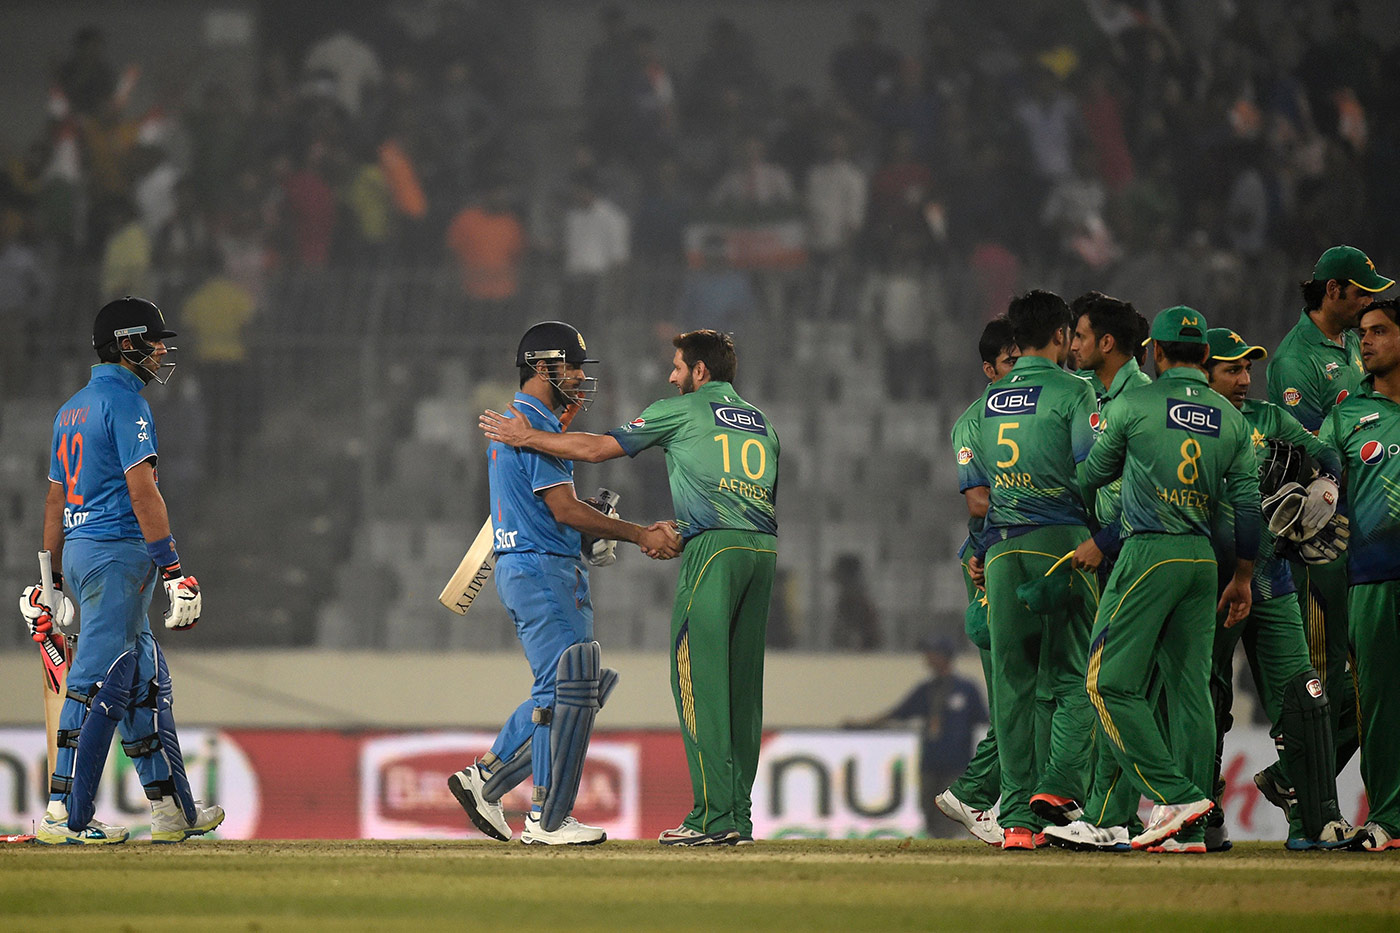 MS Dhoni and Shahid Afridi shake hands at the end of the match